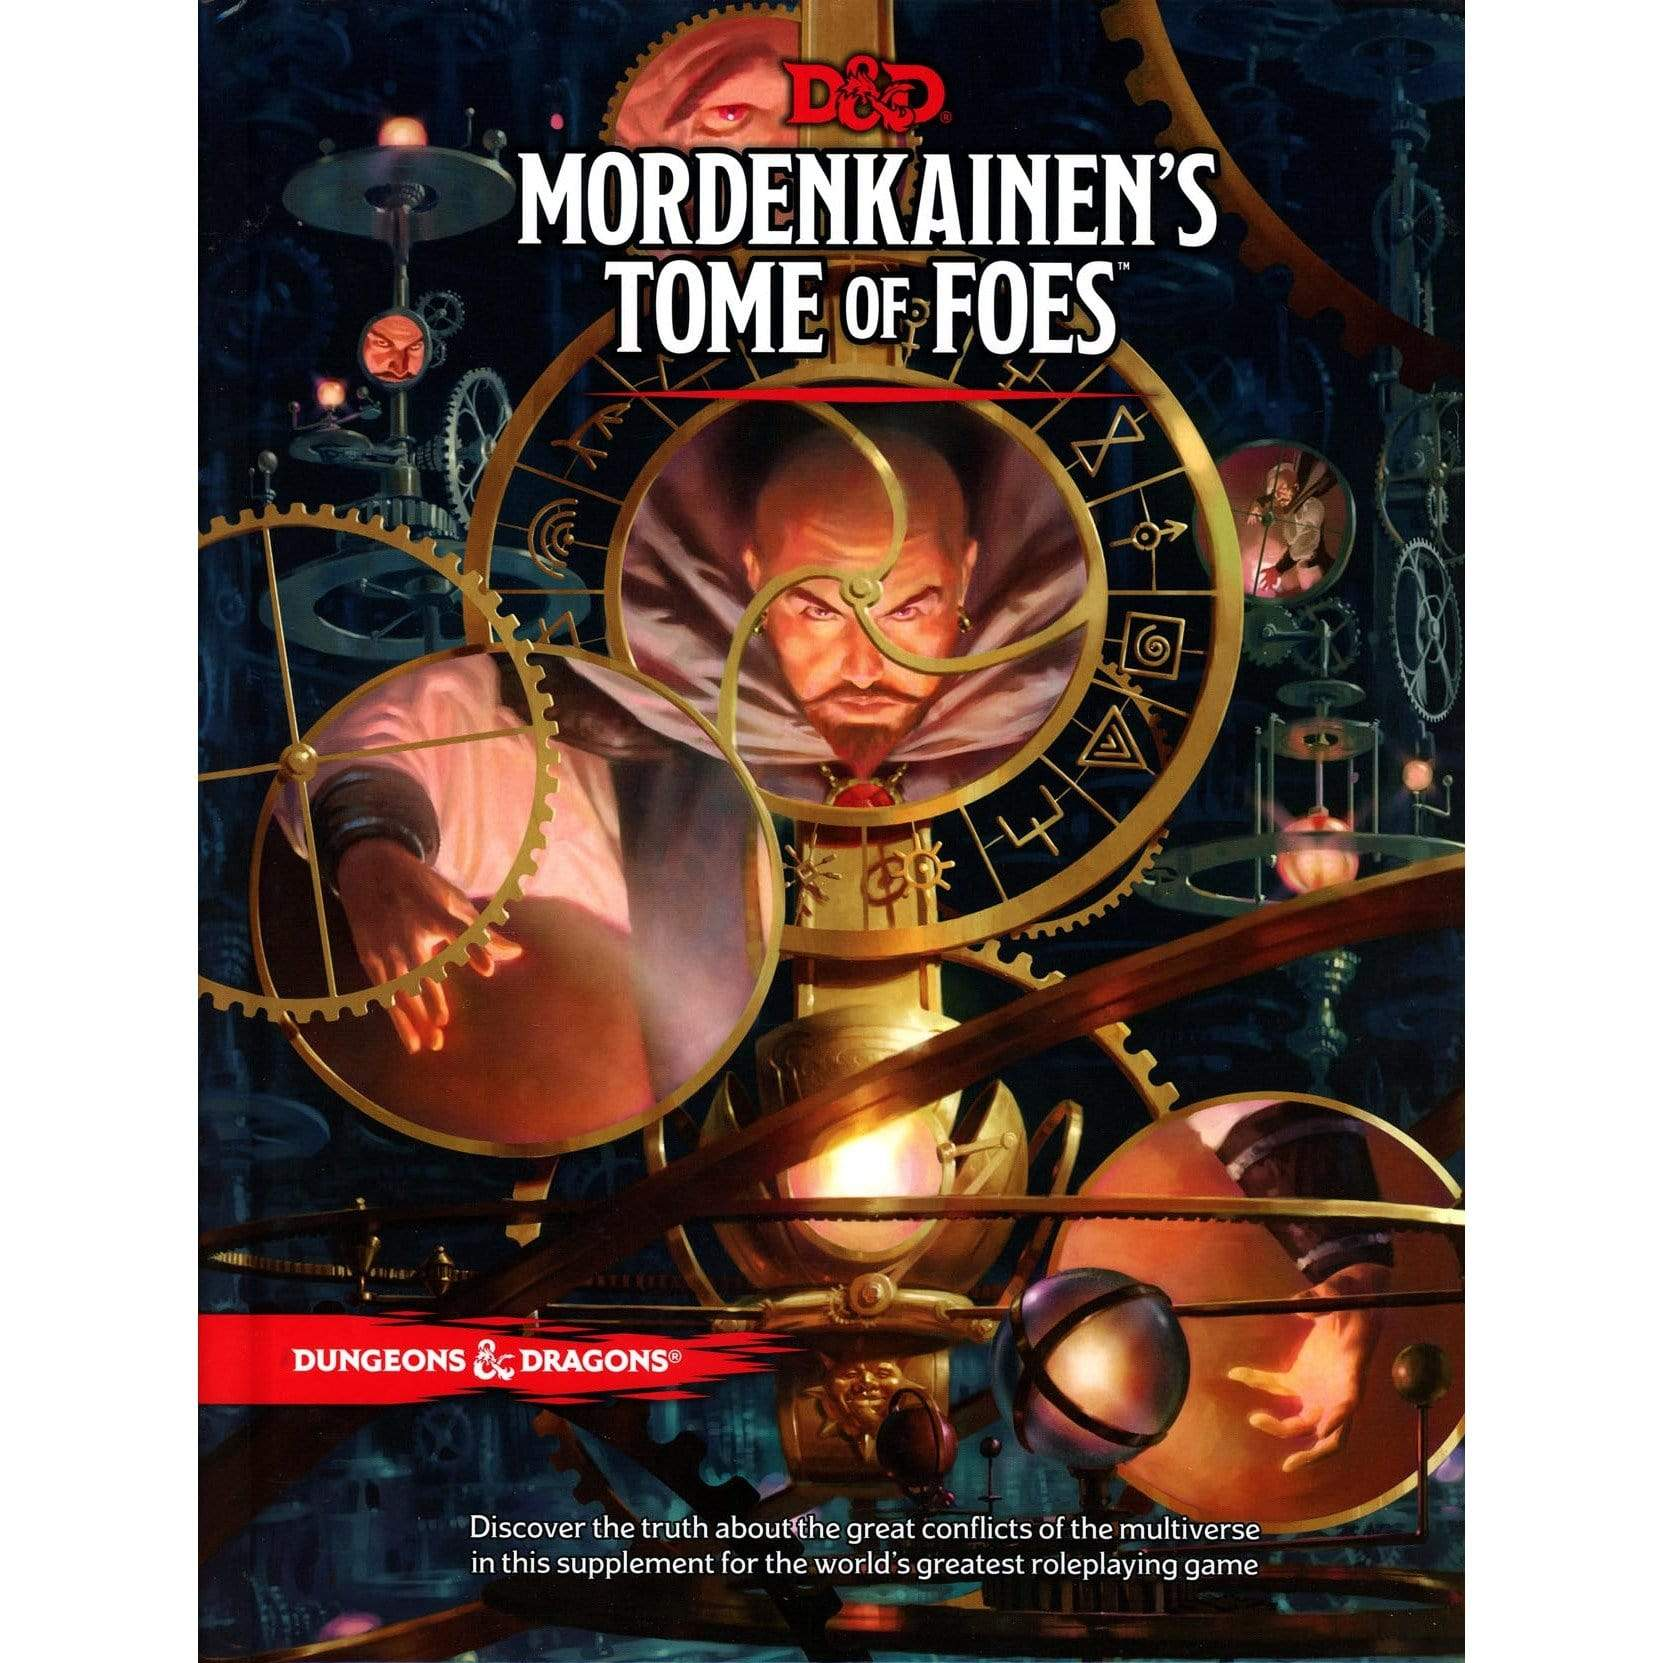 D&D: Mordenkainen's Tome of Foes Wizards of the Coast Board Games